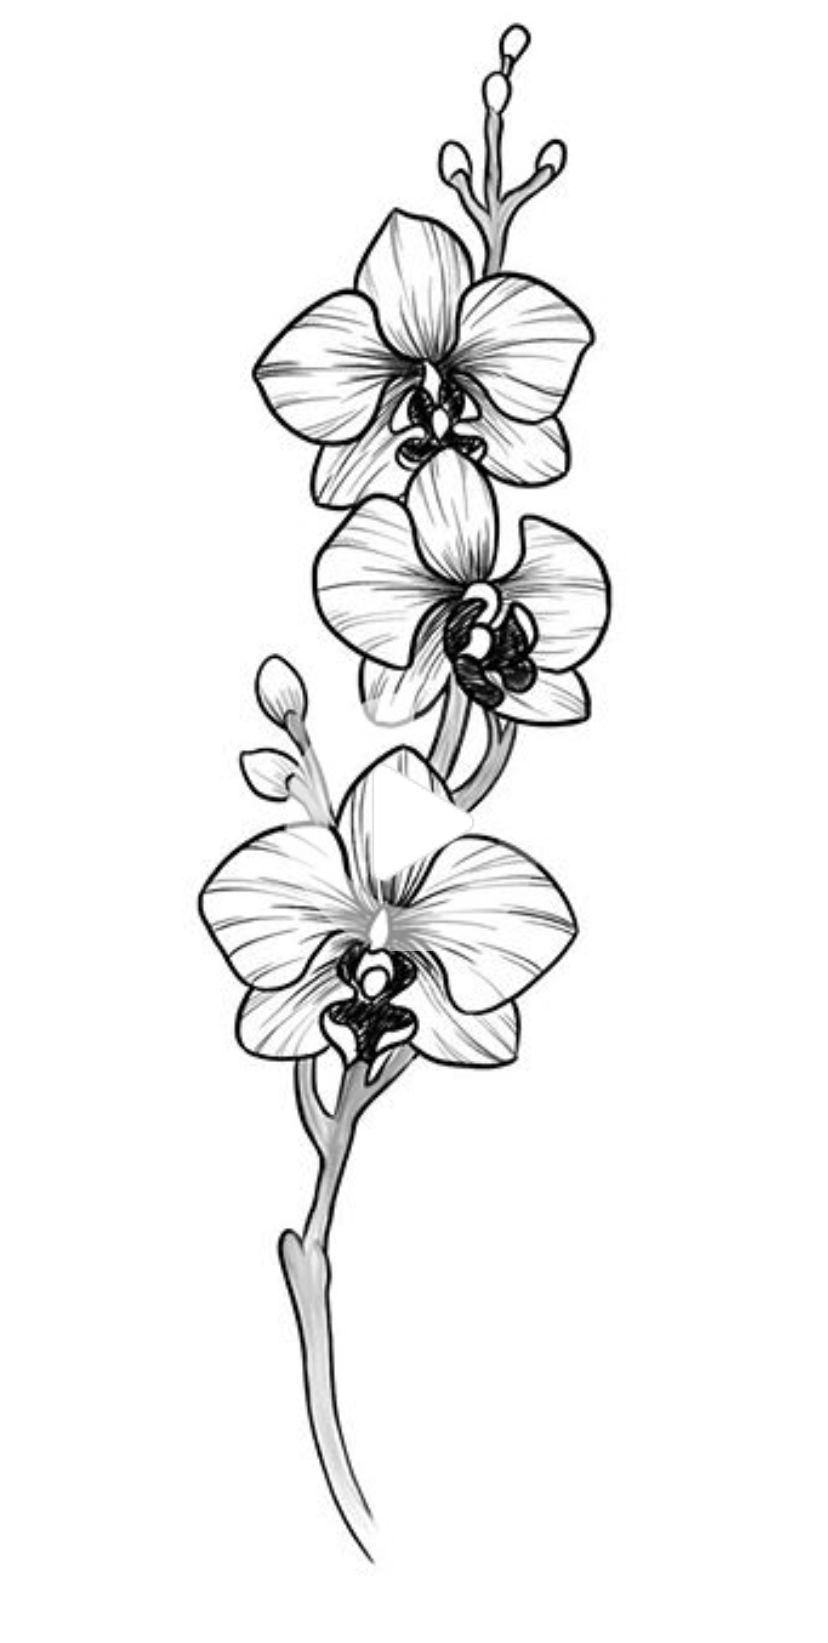 how to draw an orchid flower flowers drawings inspiration orchid sketches orchid by to how draw an flower orchid